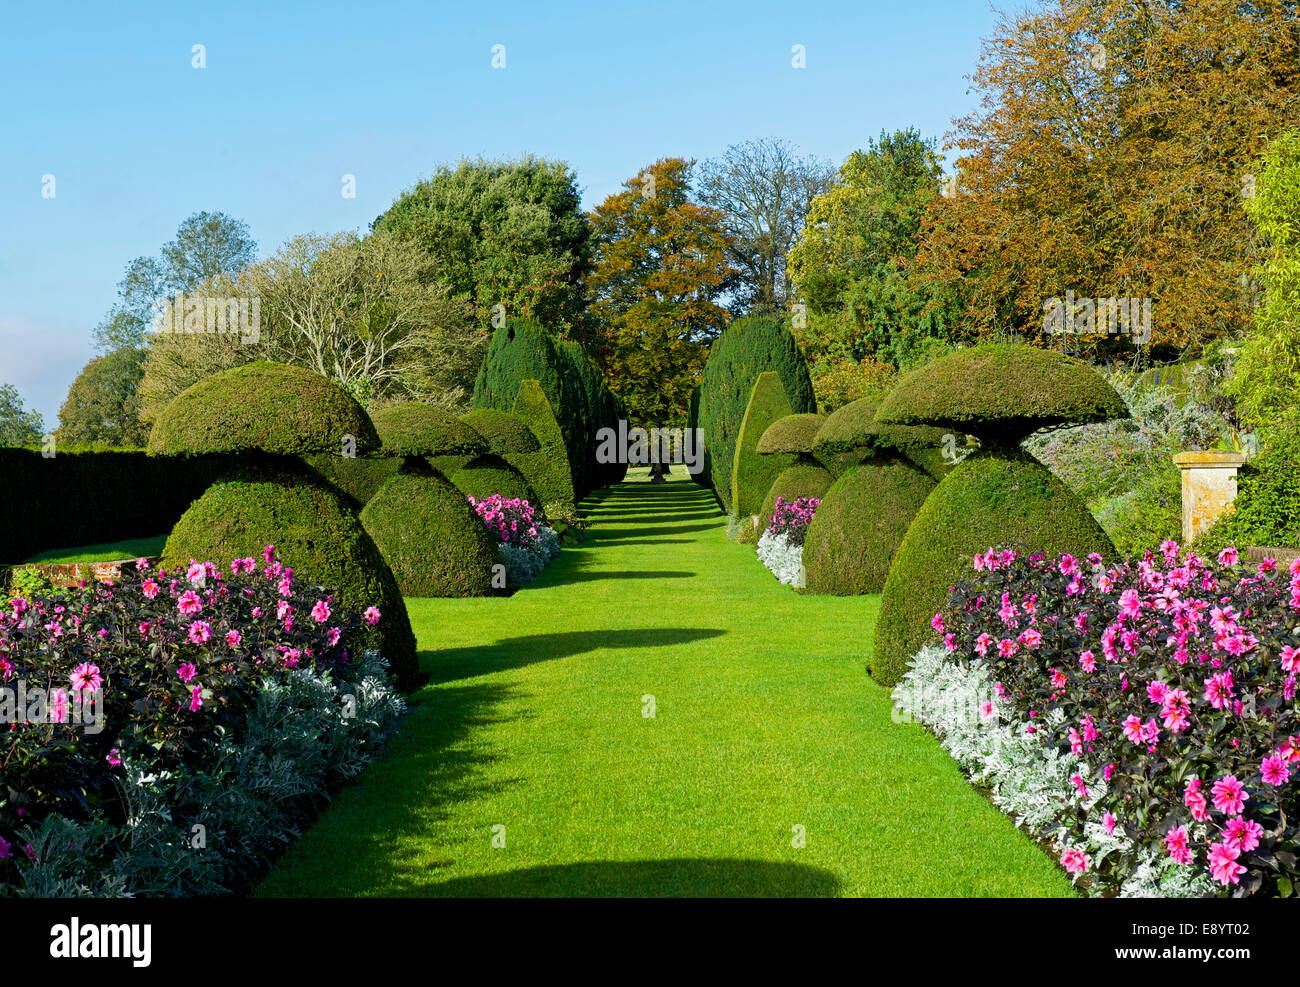 Topiary gardens at Hinton Ampner, a stately home near Alresford, Hampshire, England UK - Stock Image